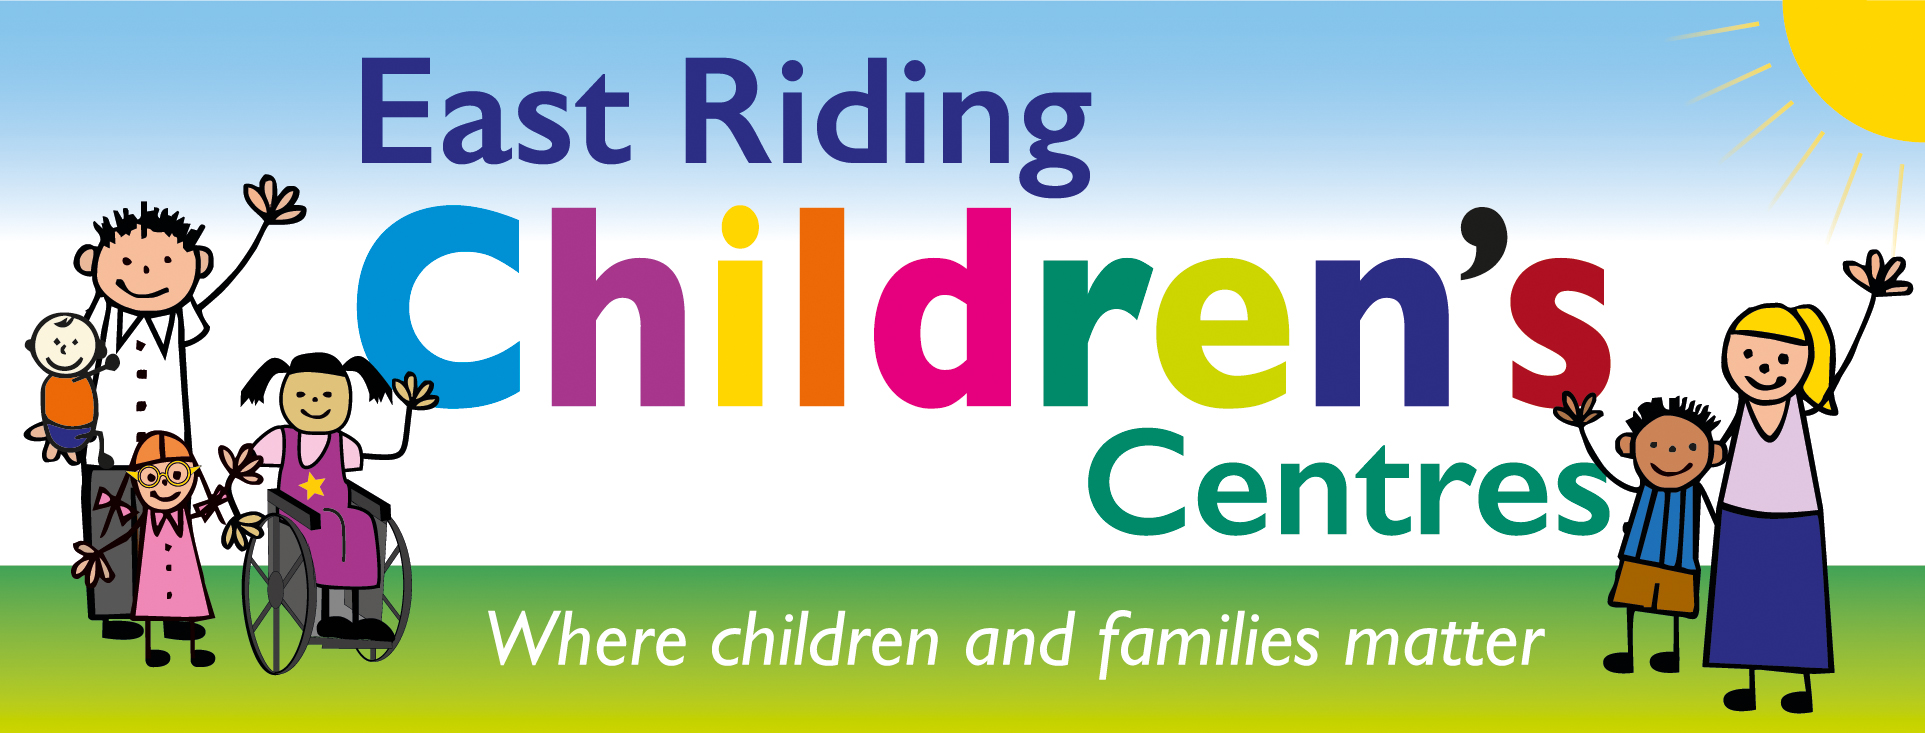 East Riding Children's Centres logo